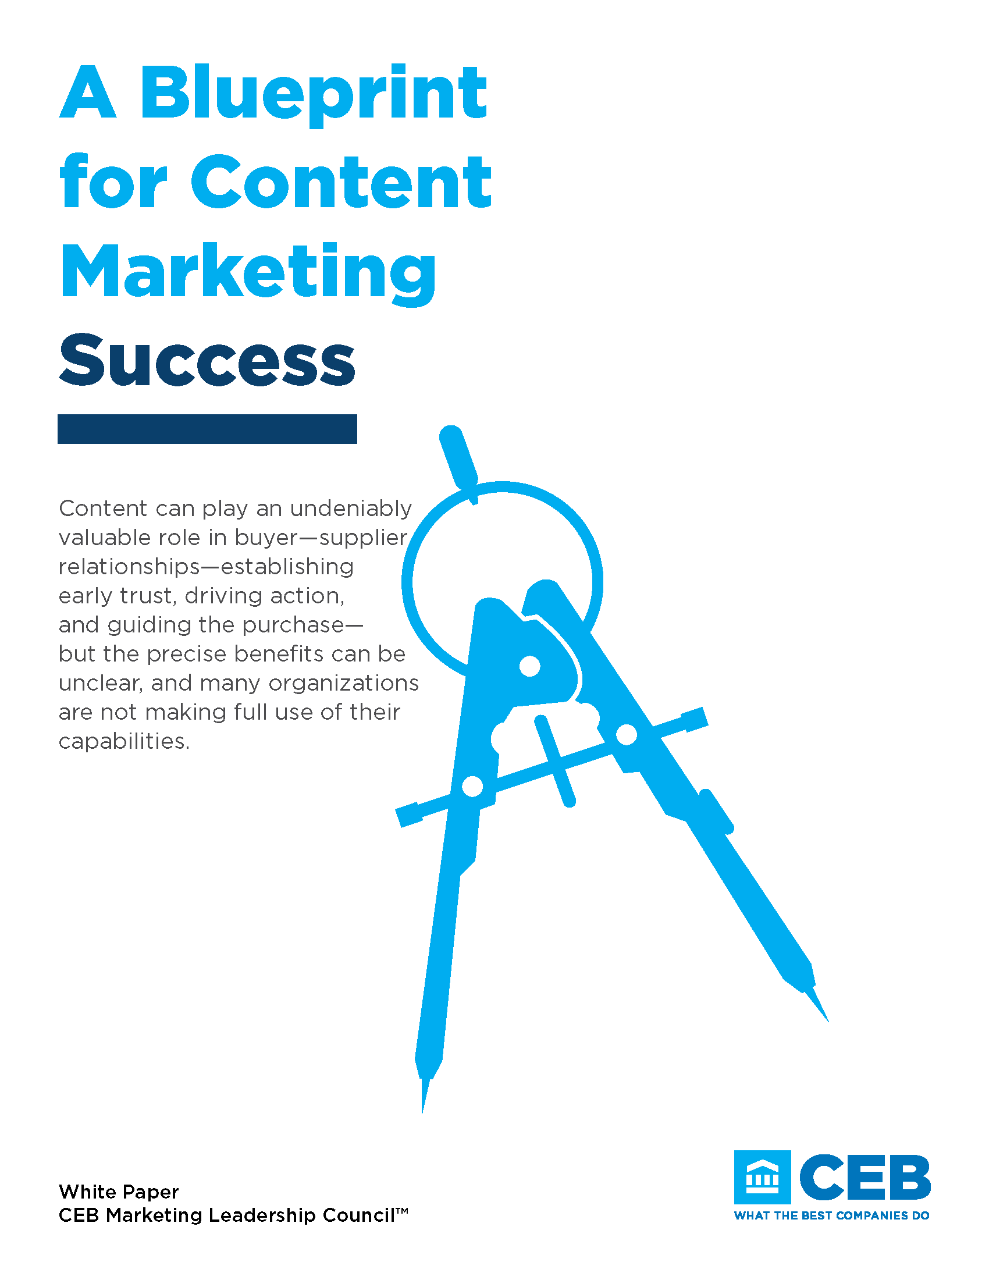 services marketing a blueprint for success Why inbound marketing follow @netvideomaker the purpose of inbound marketing is to continually create and retain new customers while continually becoming more successful at it.